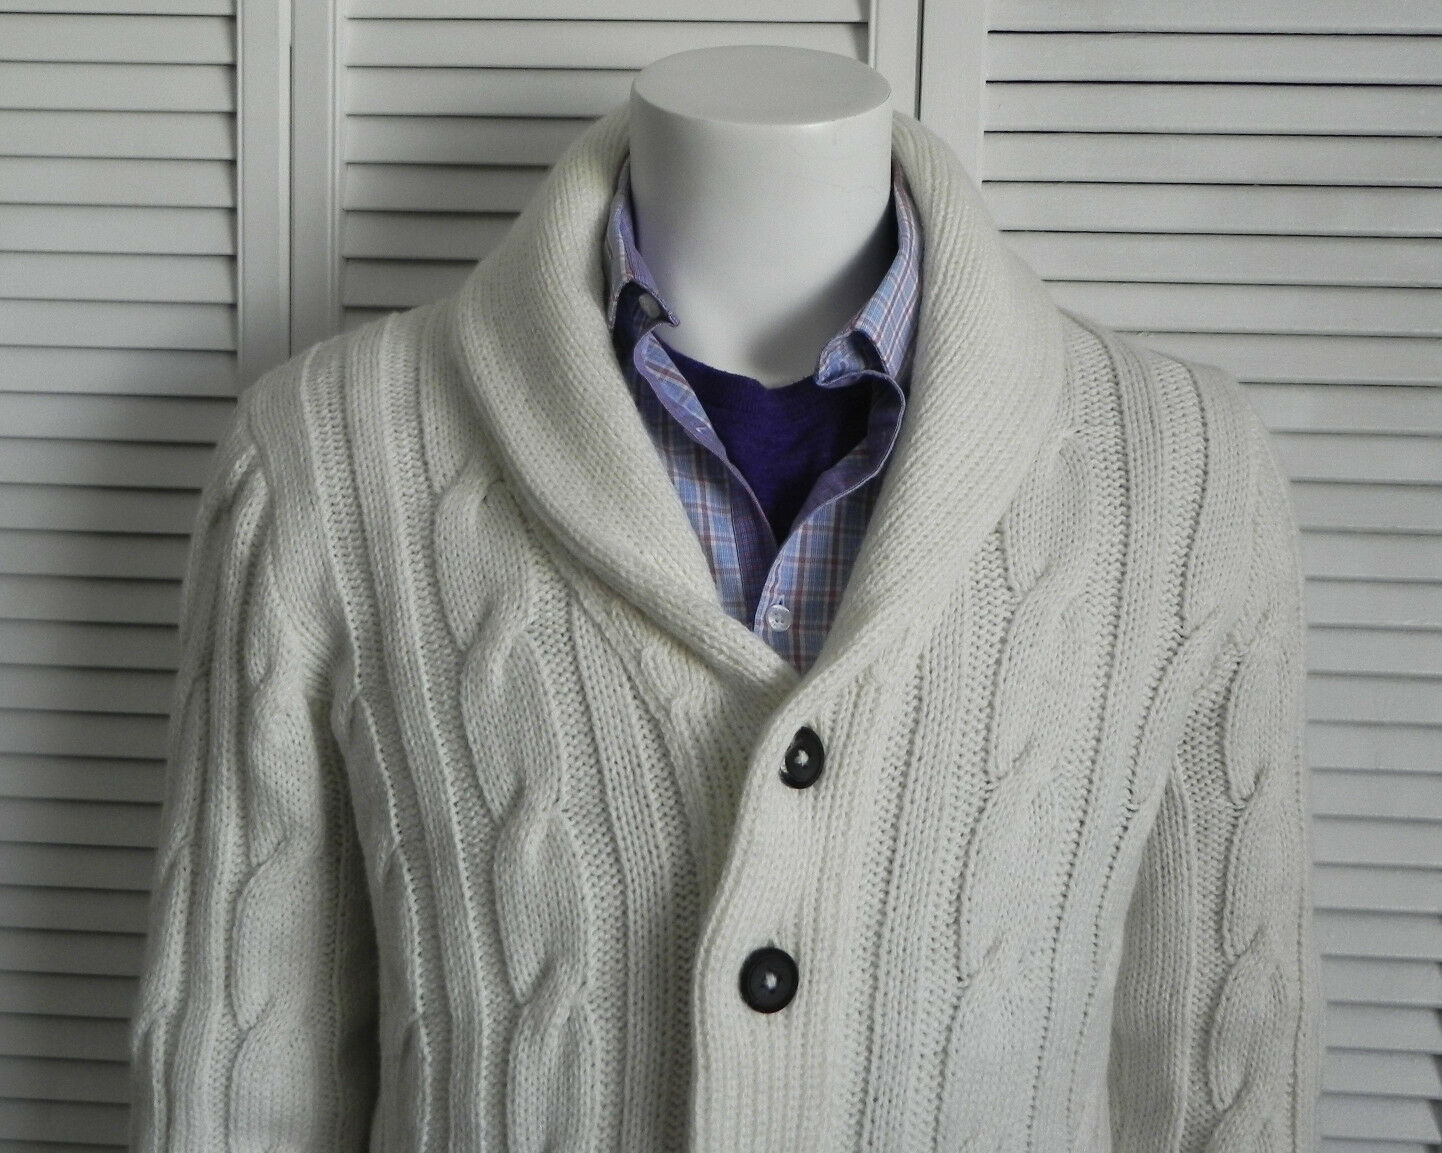 NEW Mens 2XL ALPACA Ivory White Knit Shawl Collar Cardigan Cable Sweater PERU